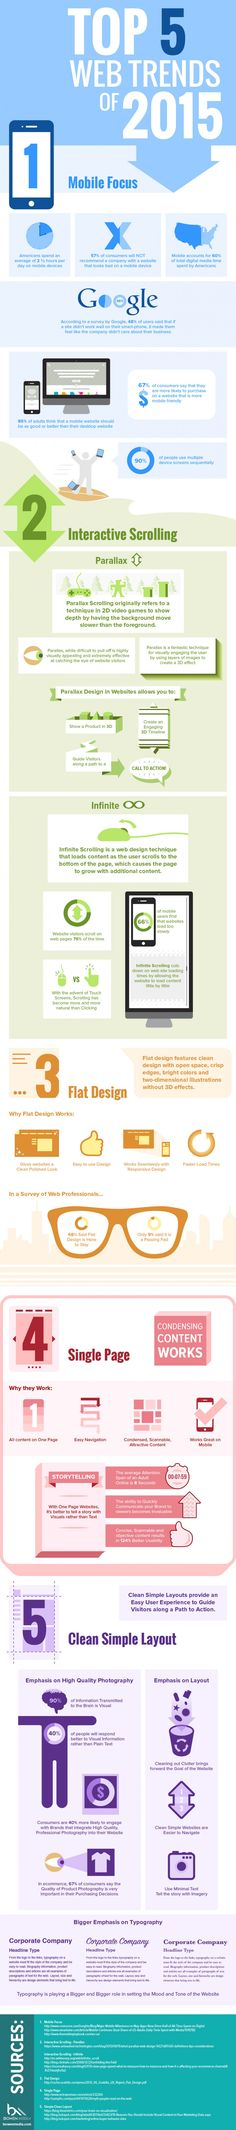 Top 5 WebDesign Trends for 2015 #infographic #WebDesign #Trends